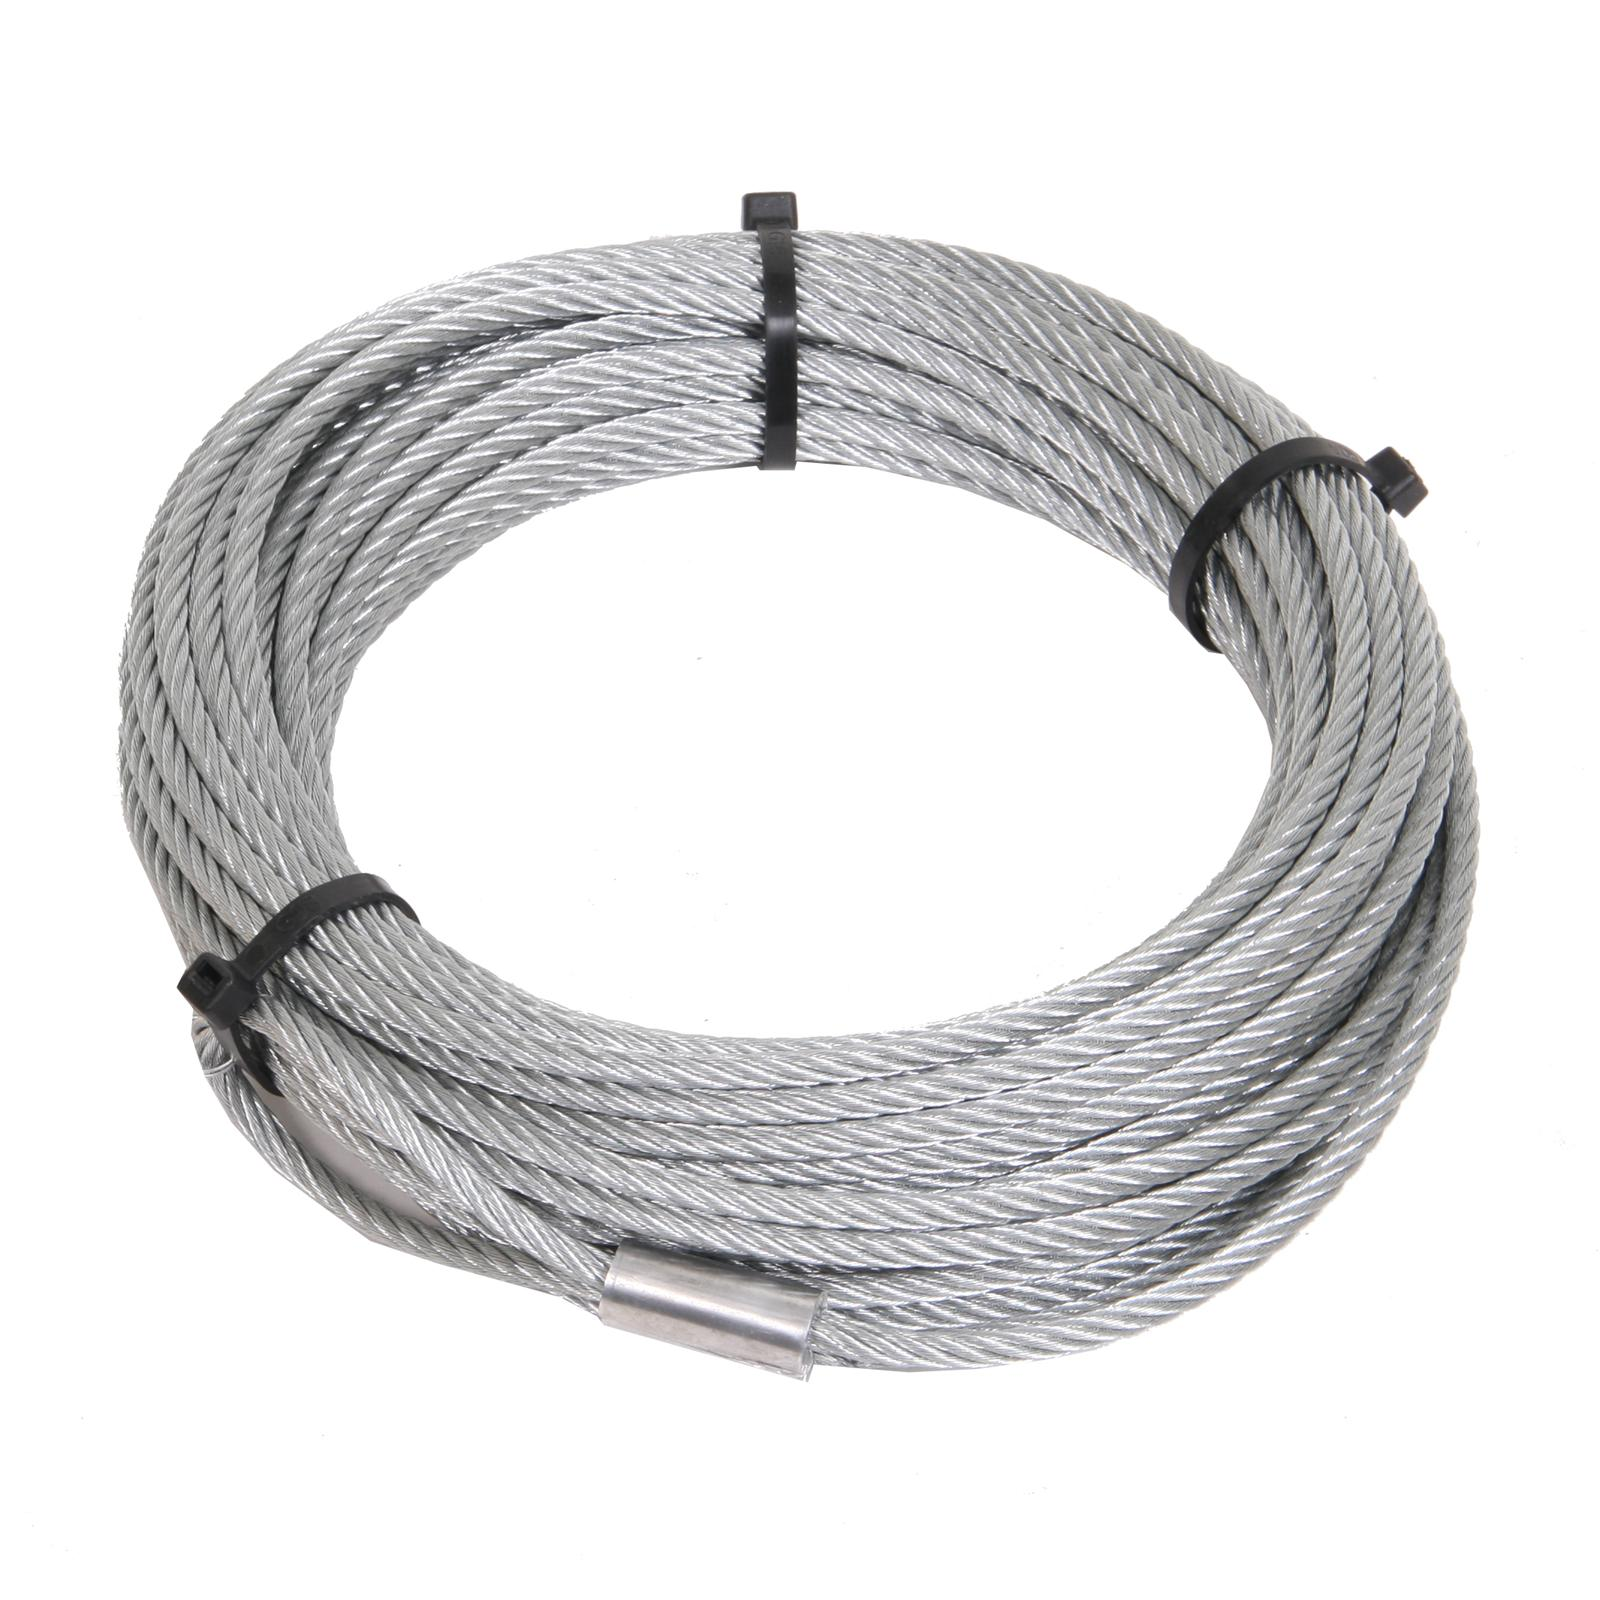 Warn Replacement Wire Ropes 15236 - Free Shipping on Orders Over $99 ...